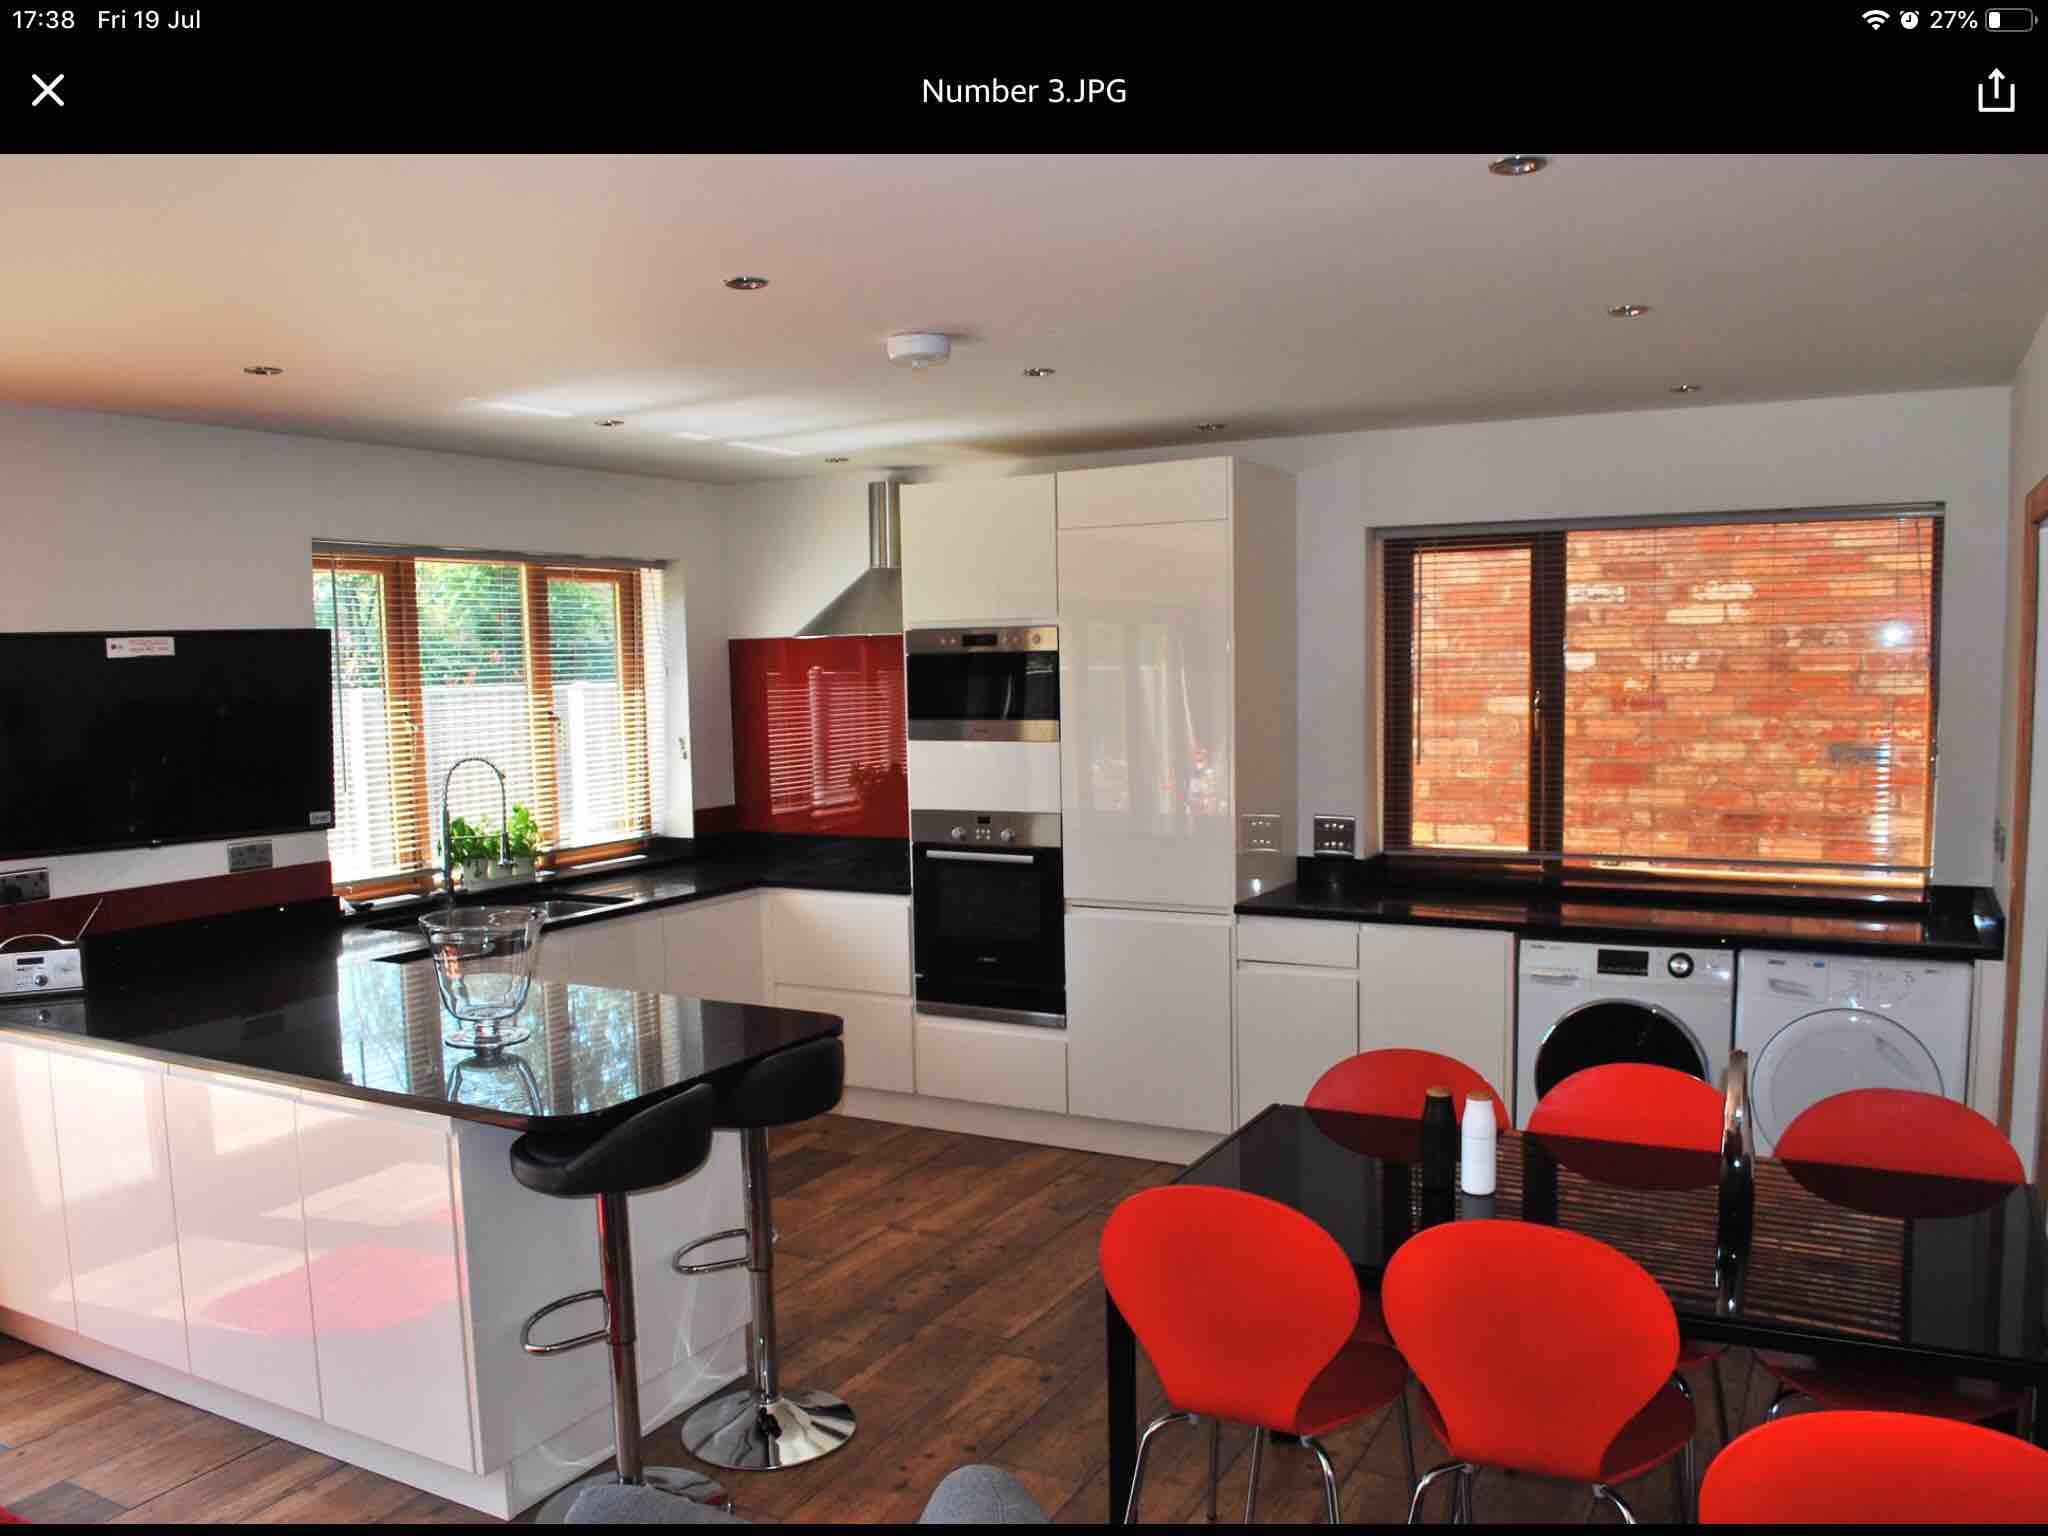 1 room in Honiley, Kenilworth, CV8 1NQ RoomsLocal image